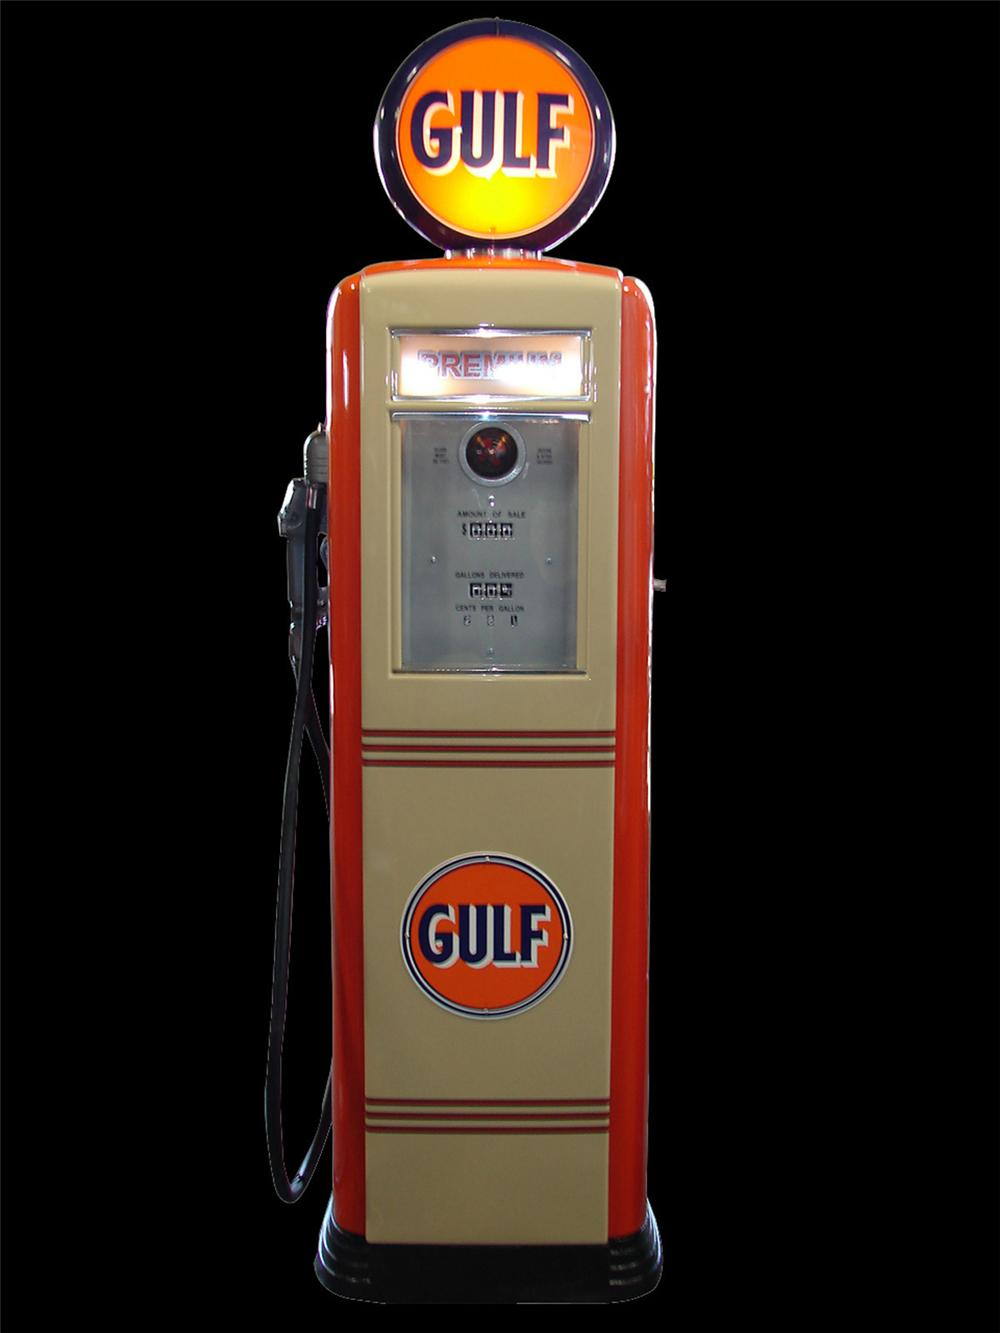 Wonderful 1949 Gulf Gasoline Tokheim Model 39 Service Station